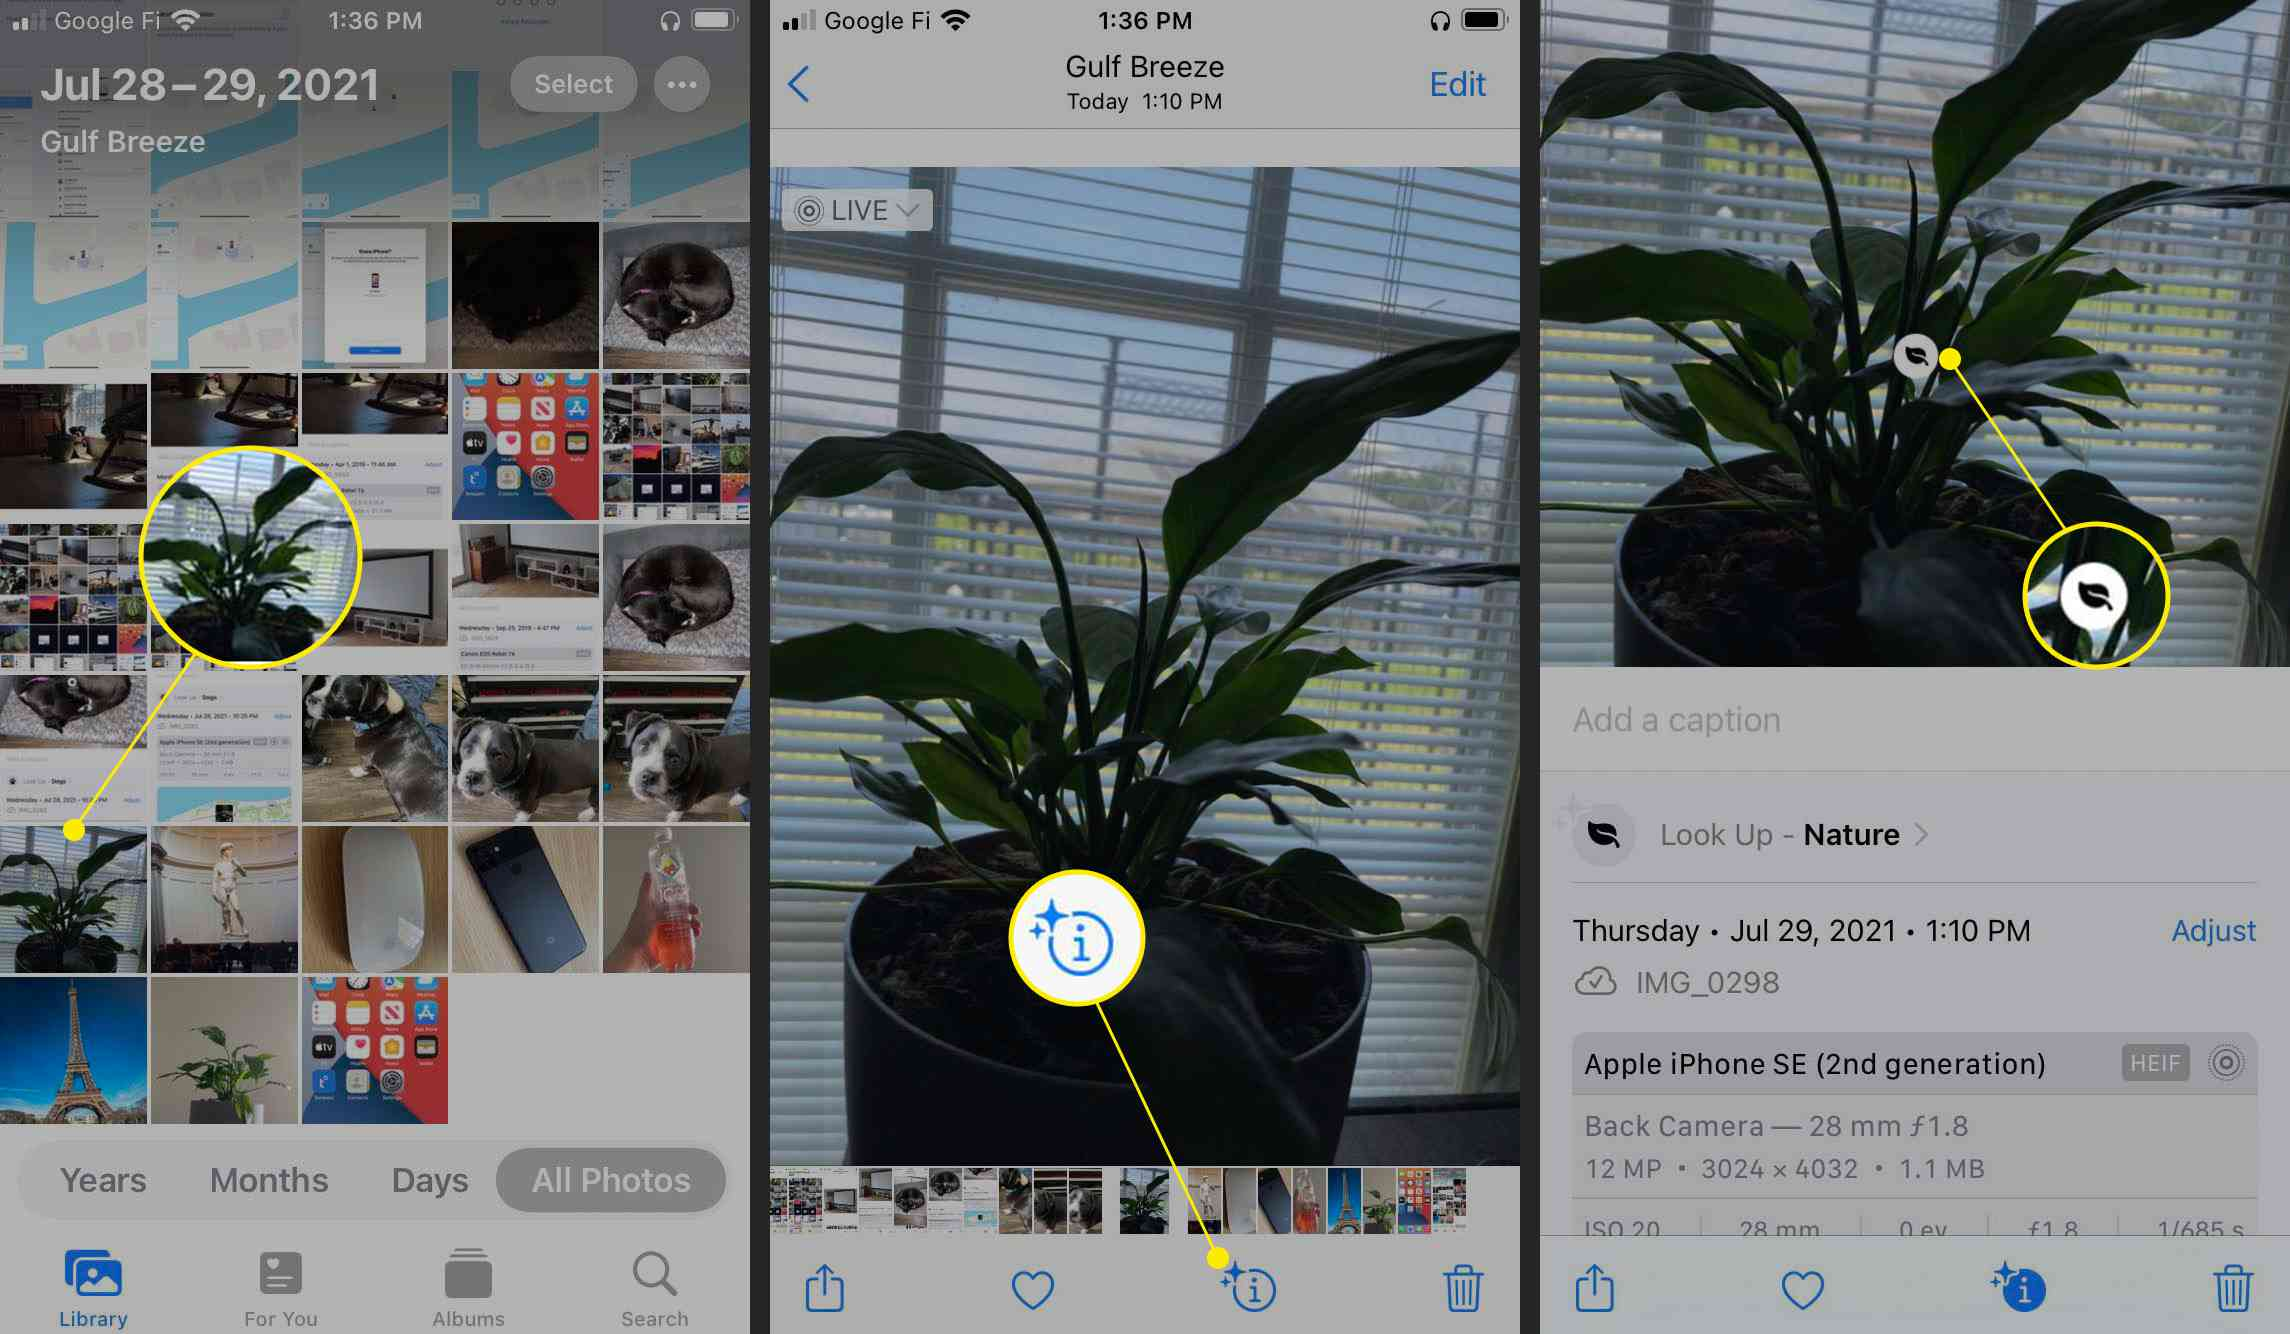 iOS 15 Photos app with plant photo, information icon, and Visual Lookup icon highlighted